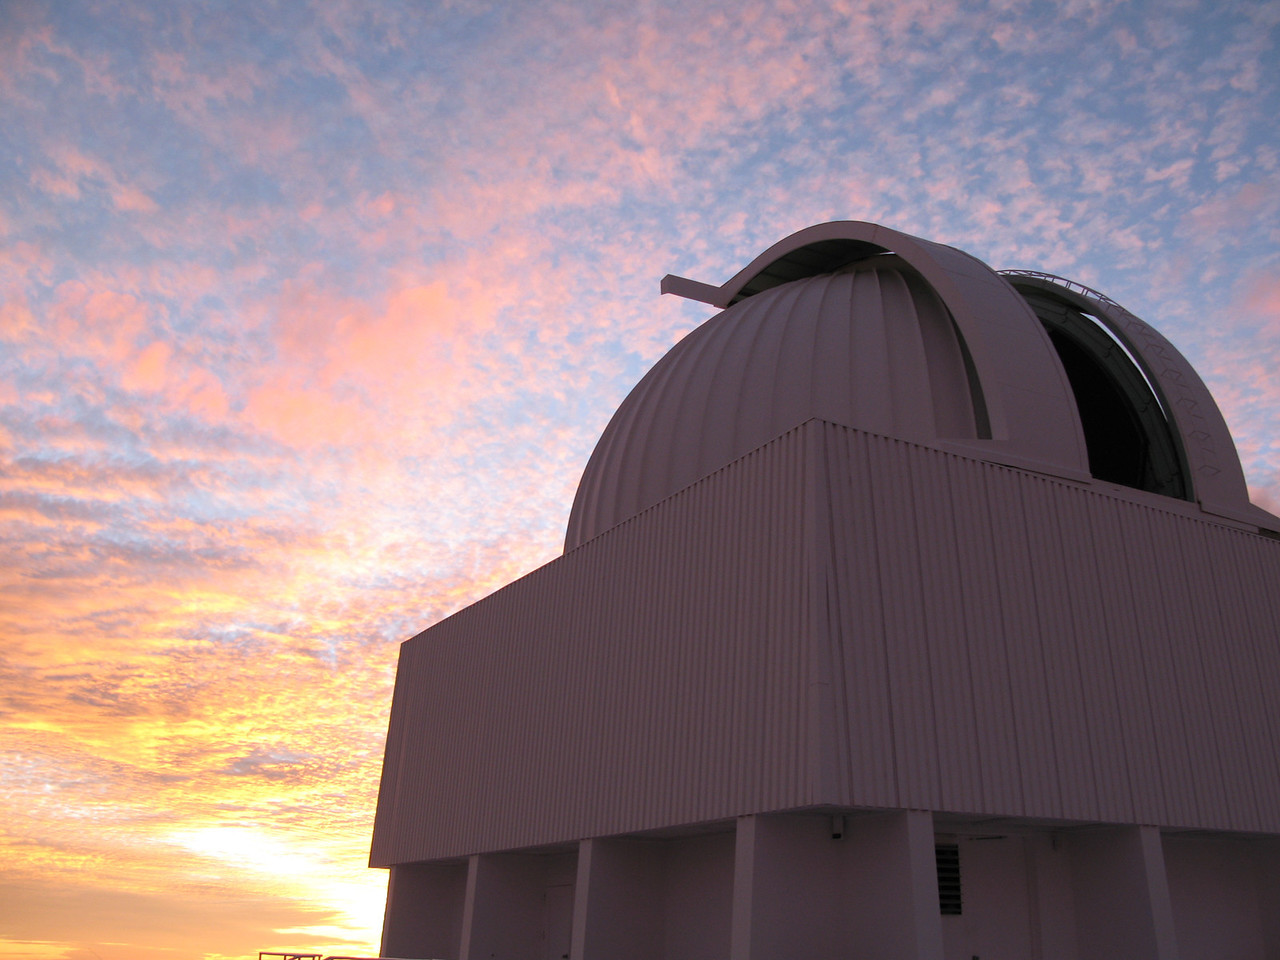 0.9m telescope at sunset